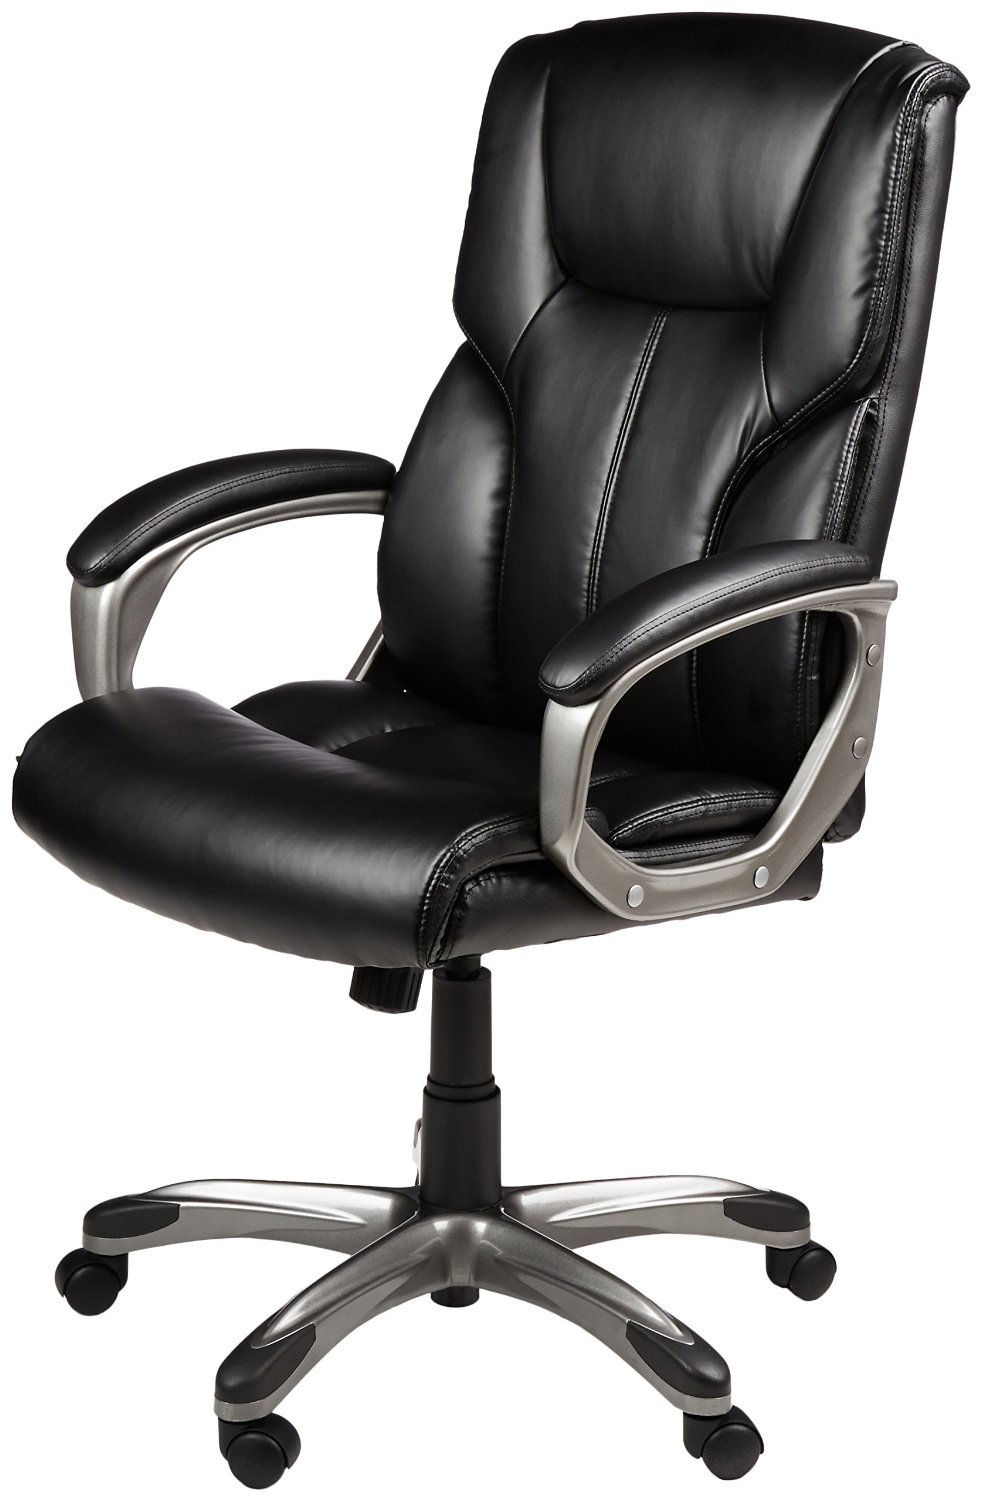 If You Are Looking For A Cheap Executive Chair With Good Quality, This Chair  From Amazonu0027s Brand May Be The Right One For You. It Is Characterized By A  Very ...